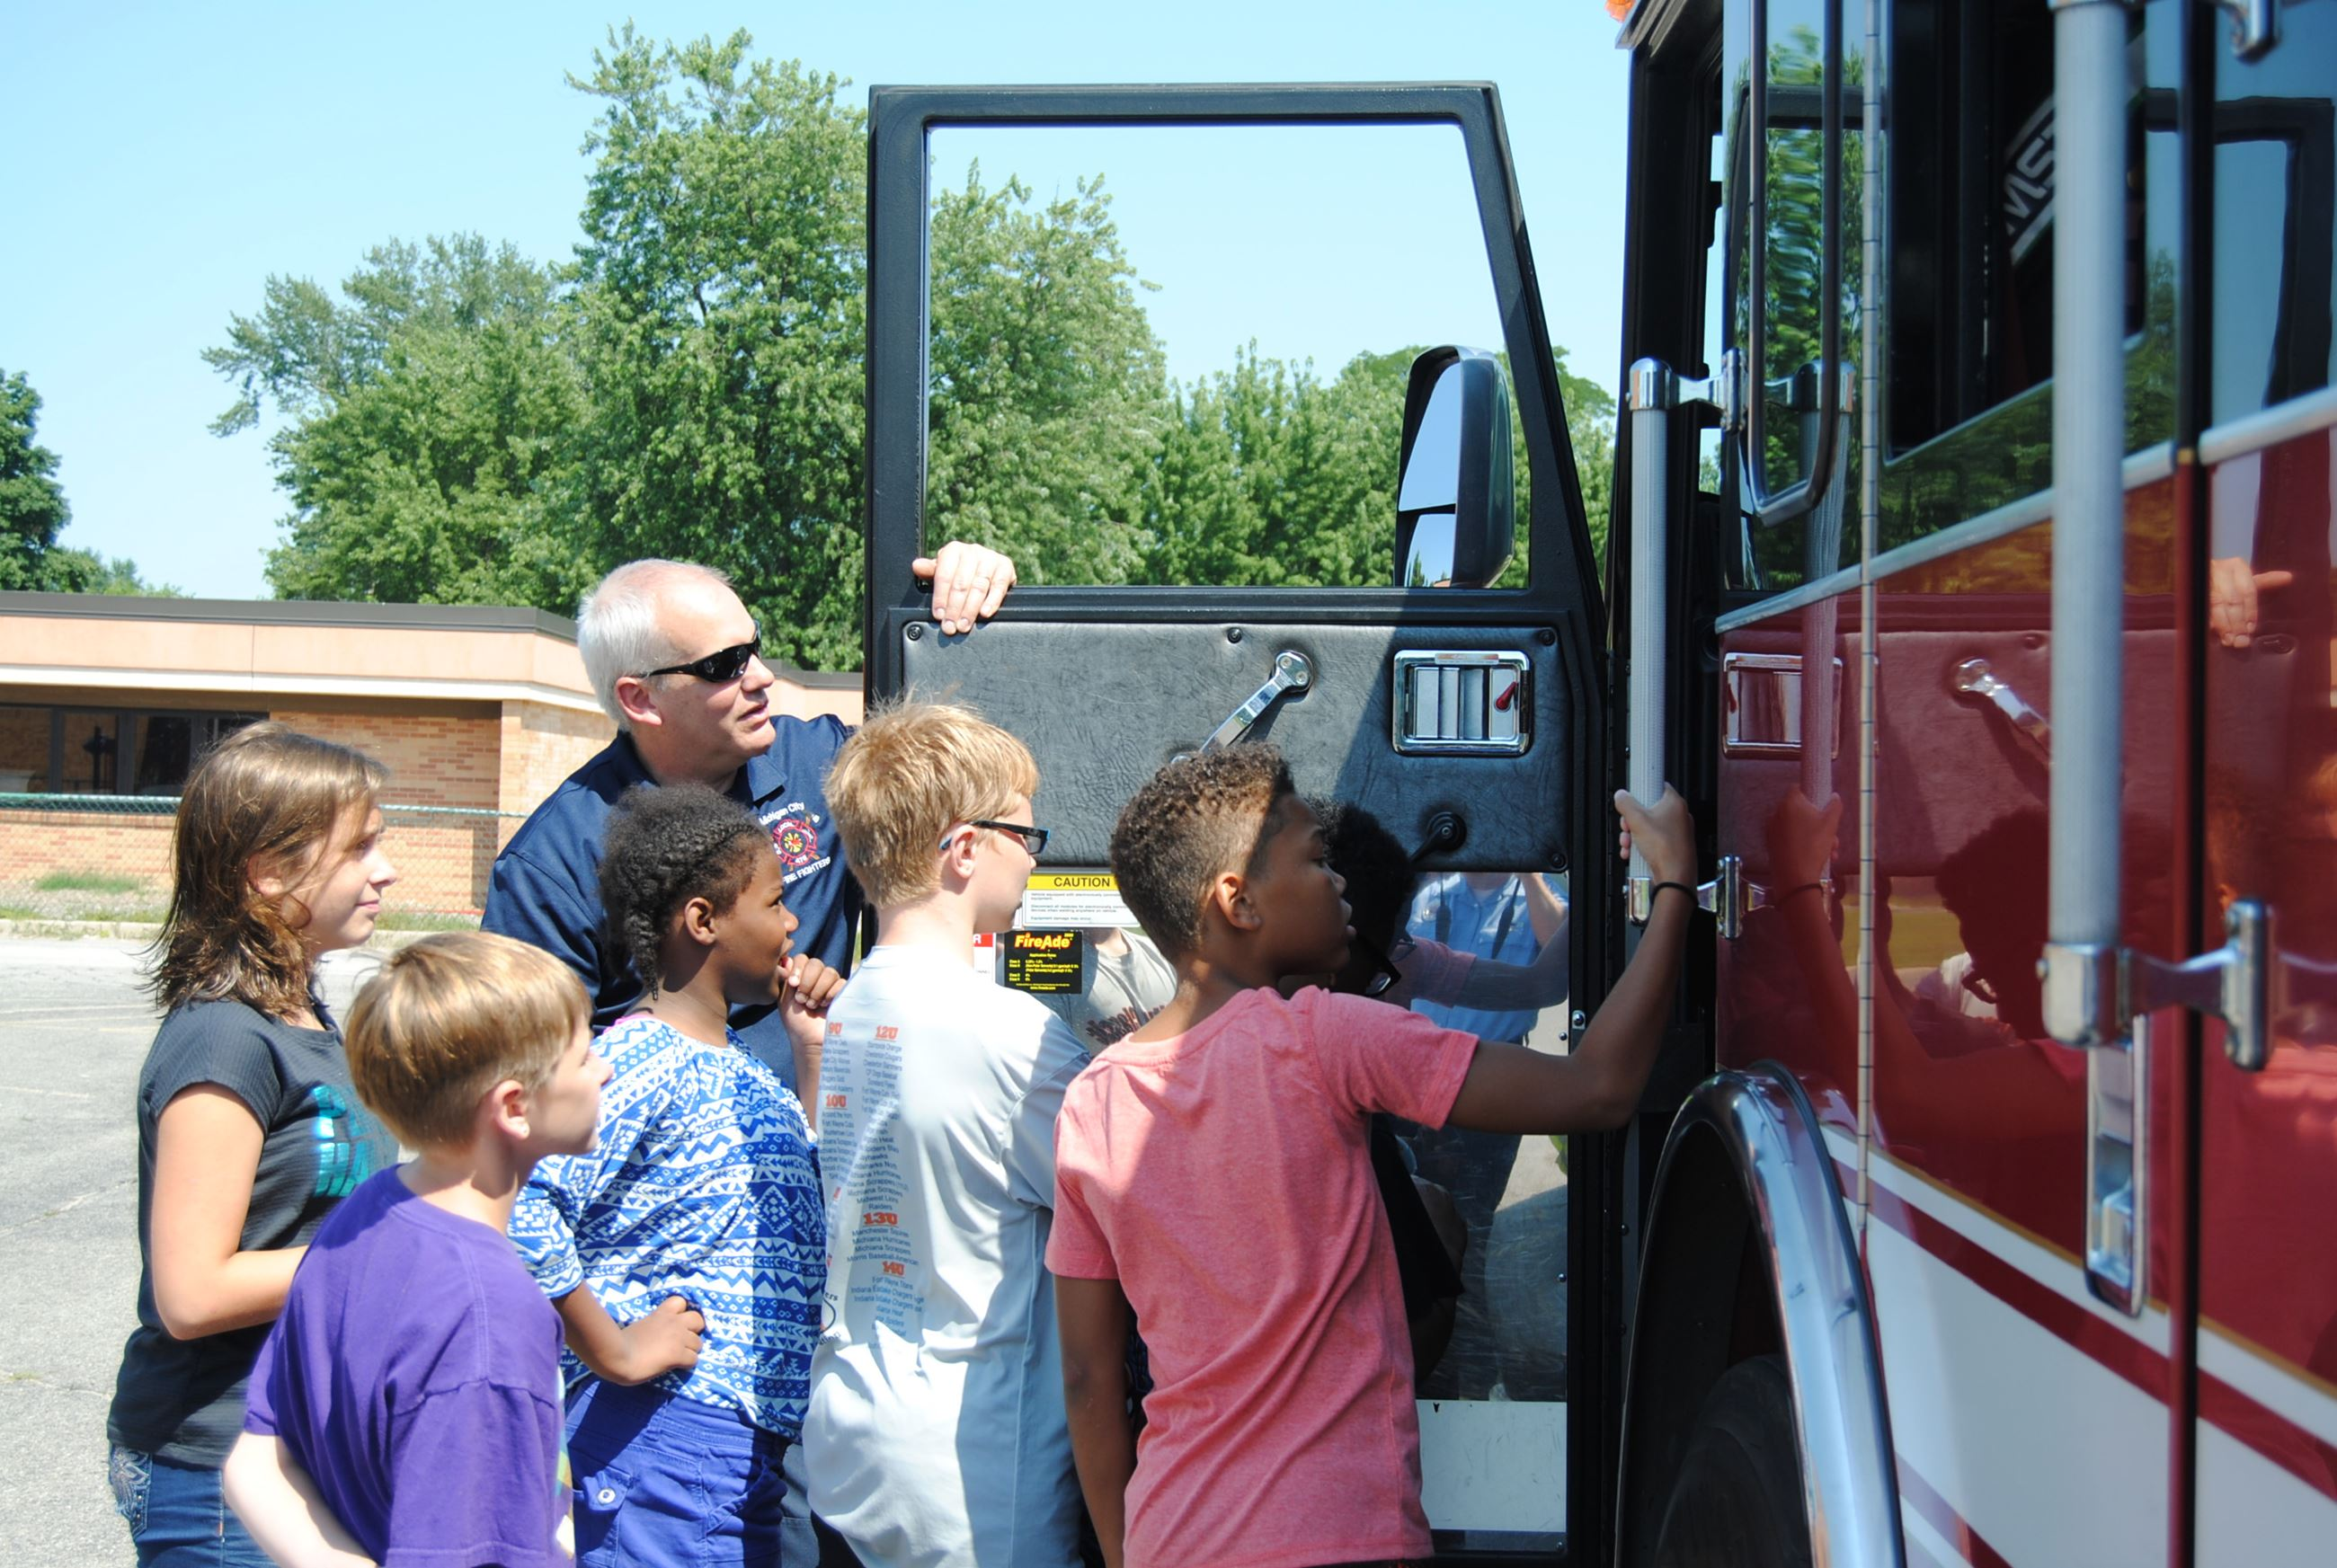 Firefighter shows Engine interior to students from Knapp Elementary